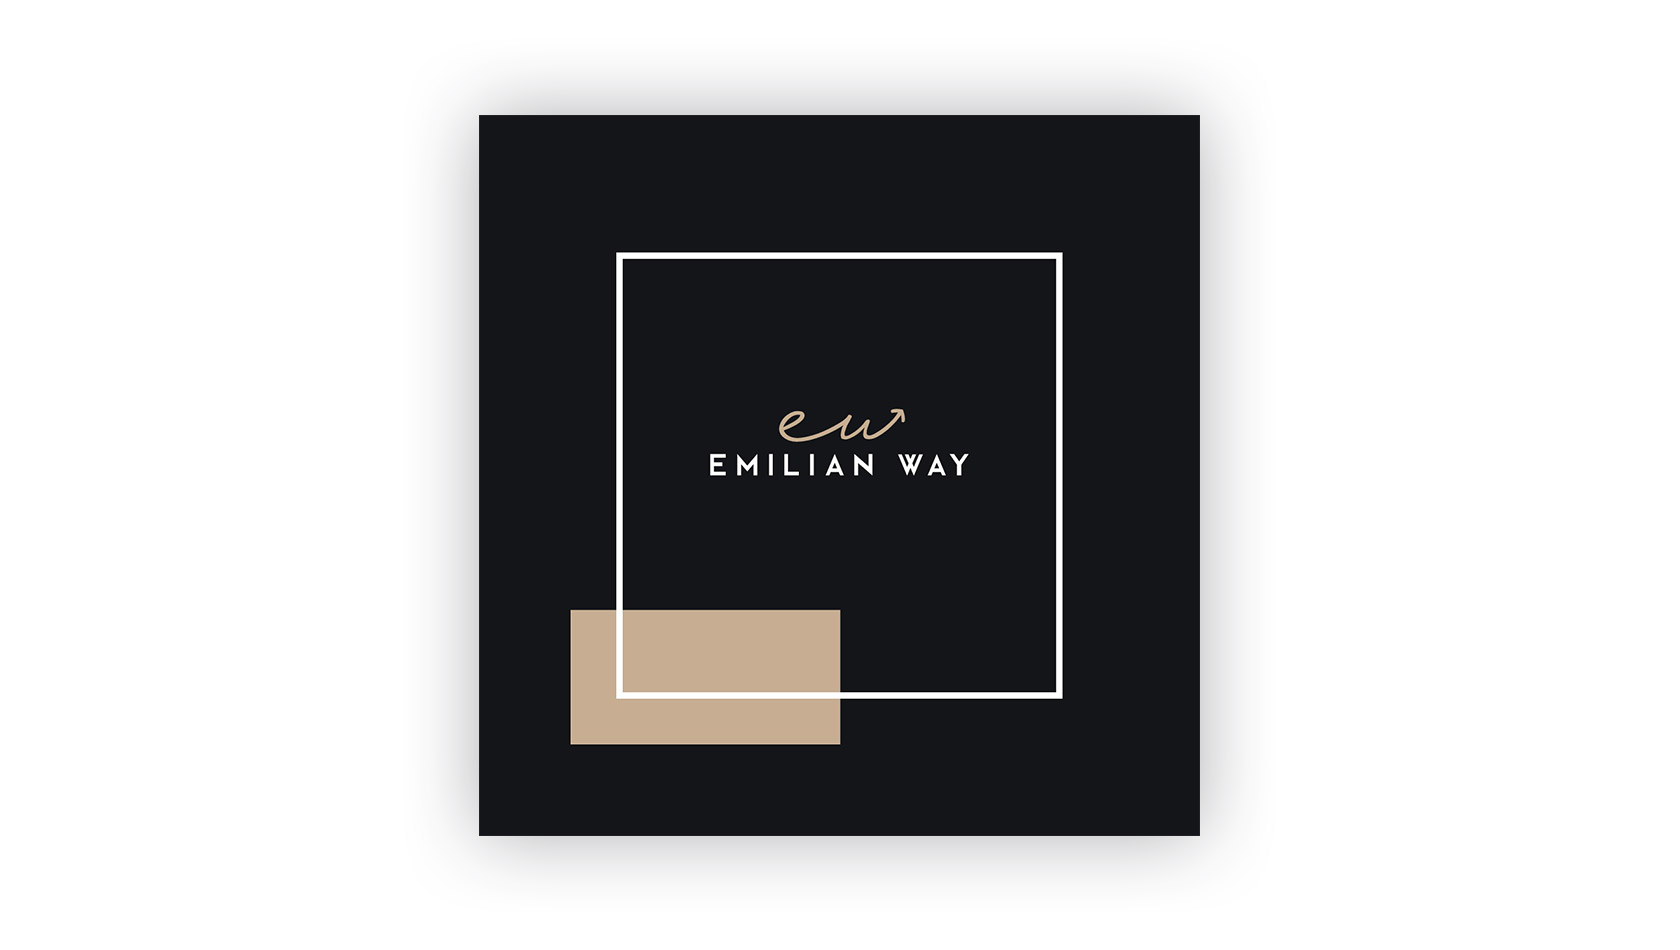 Graphic designer Project of EmilianWay